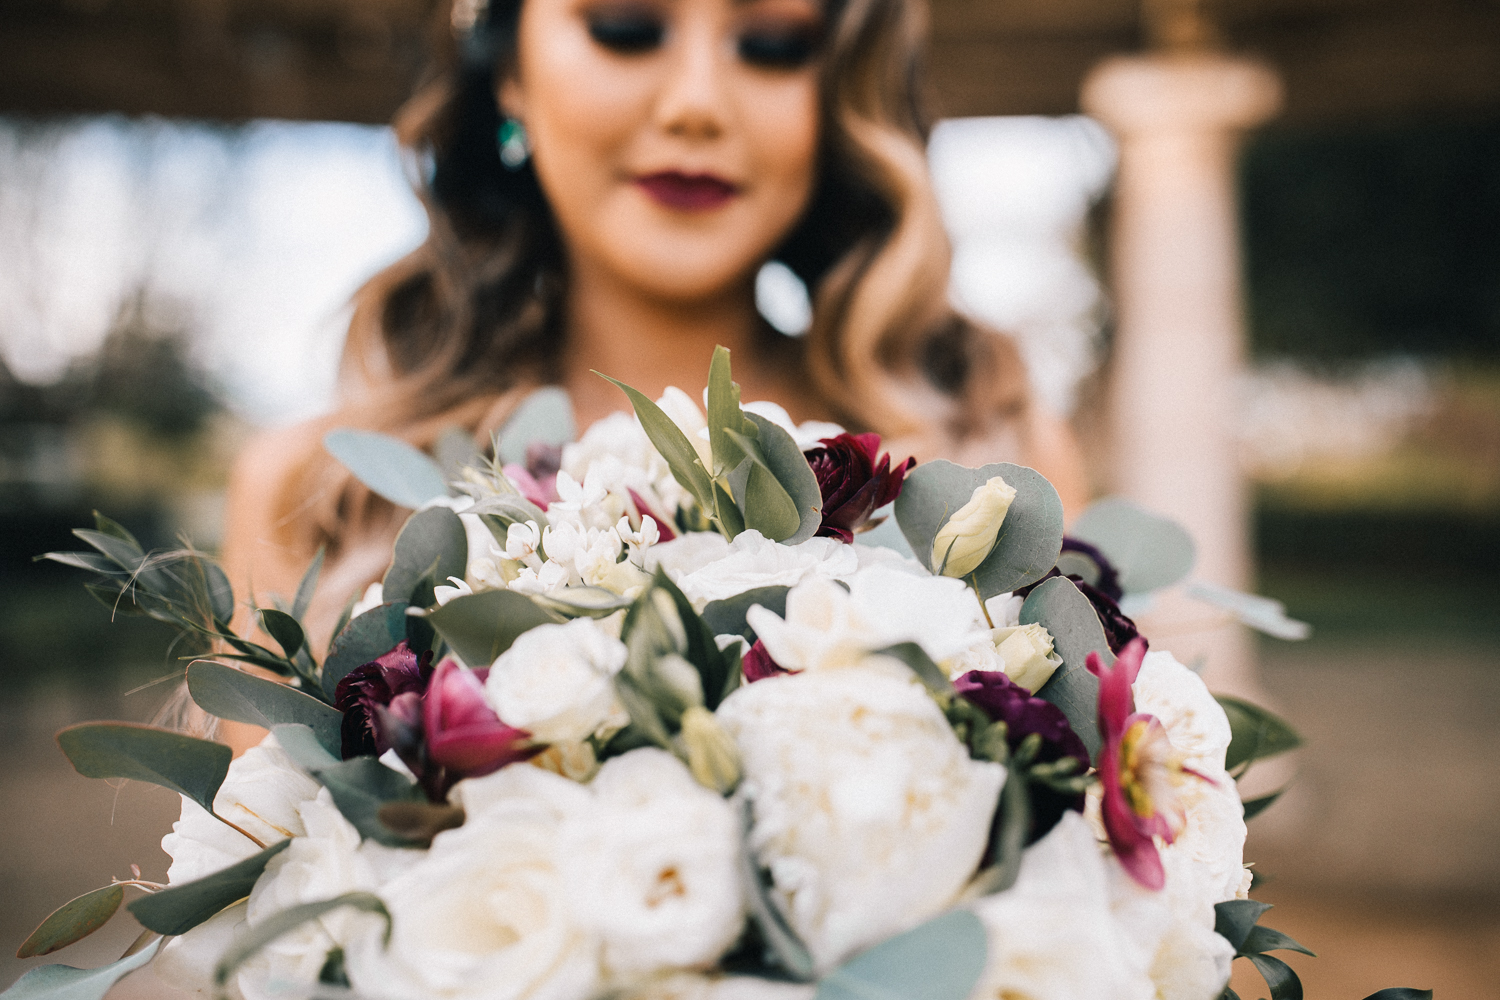 2019_01_ 202019.01.20 Santiago Wedding Blog Photos Edited For Web 0031.jpg